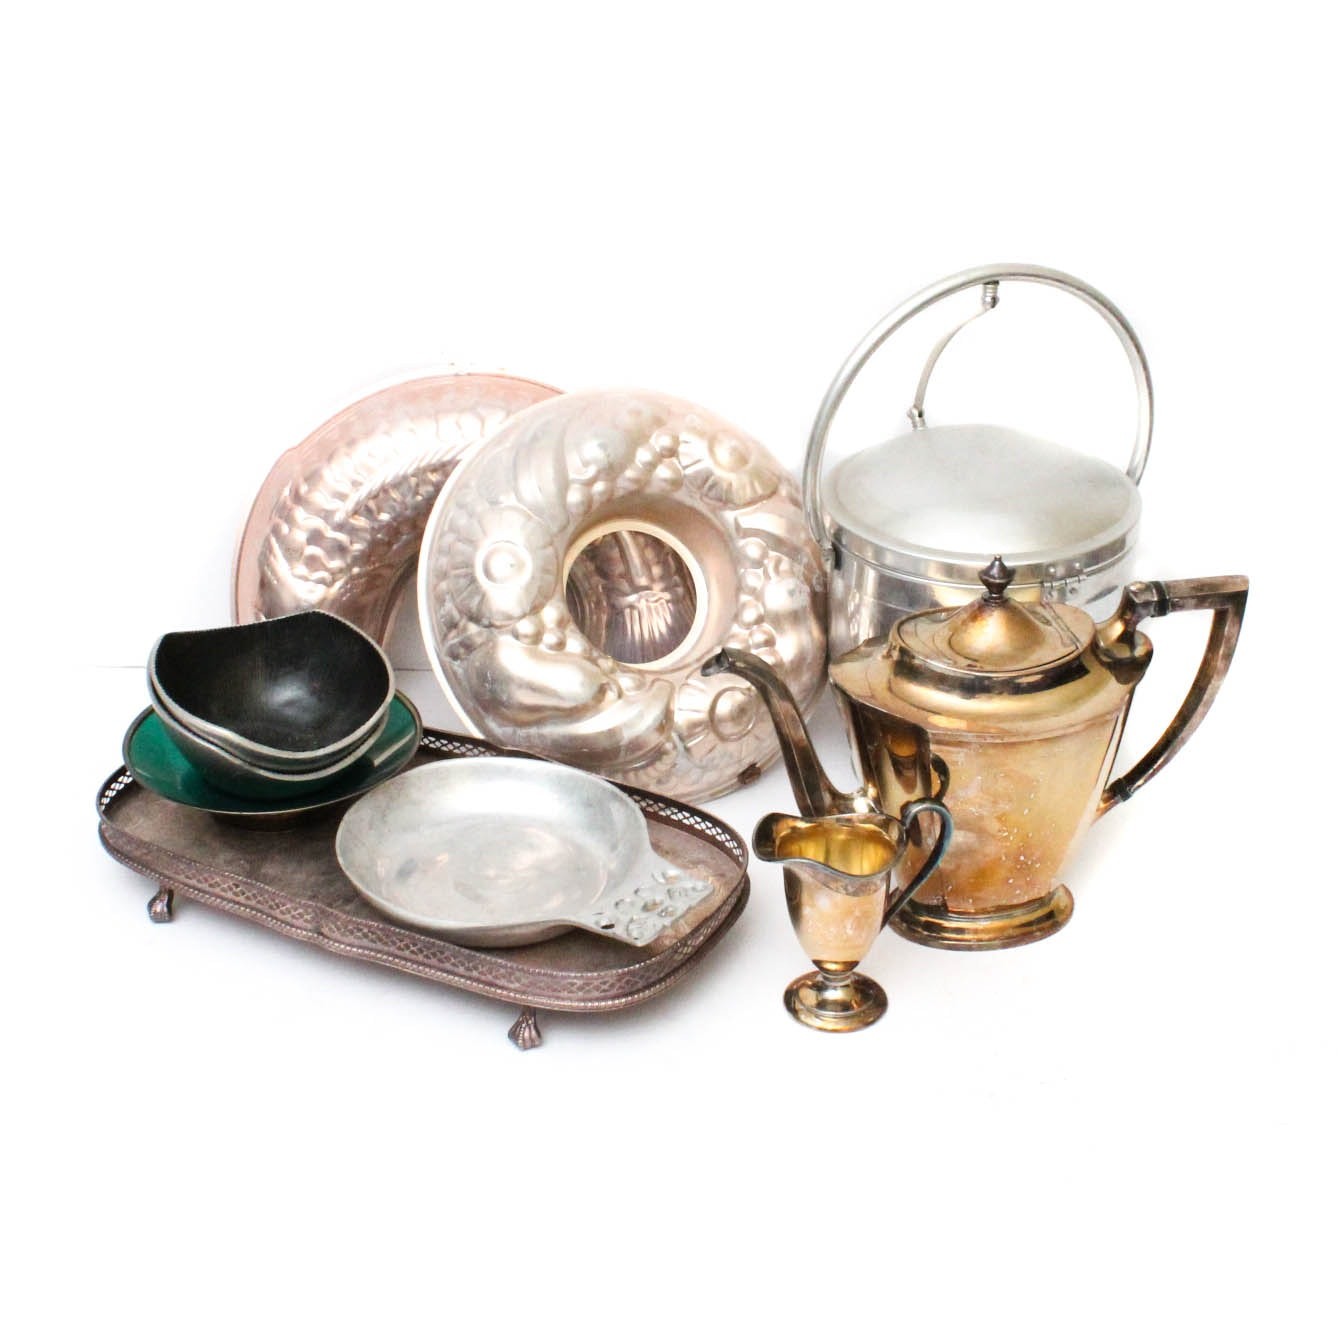 Vintage Silver Plate and Metal Kitchenalia and Serveware